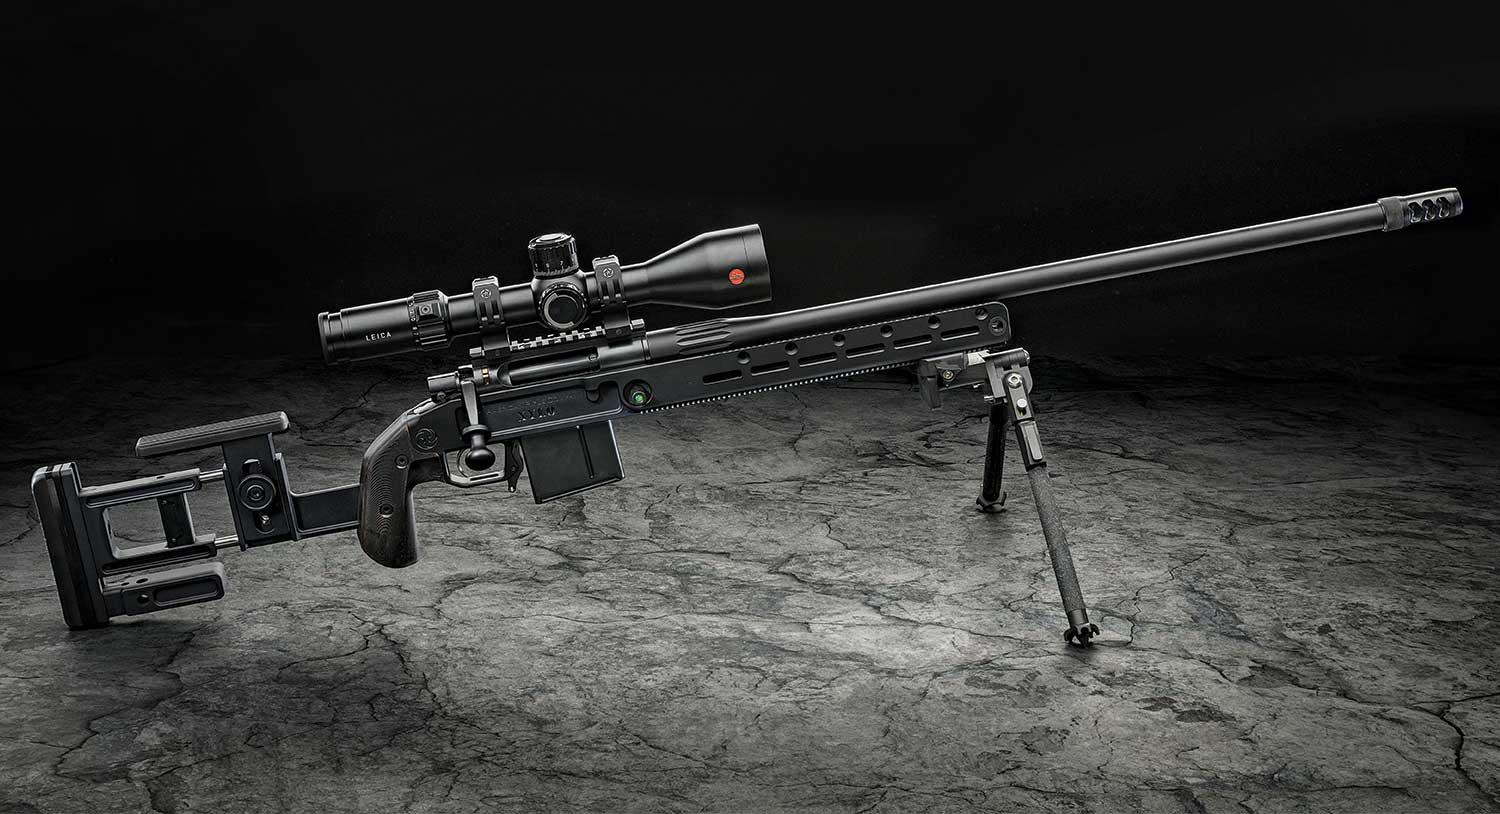 An American Rifle Company Nucleus Gen2 rifle on shooting sticks and a Leica Riflescope.